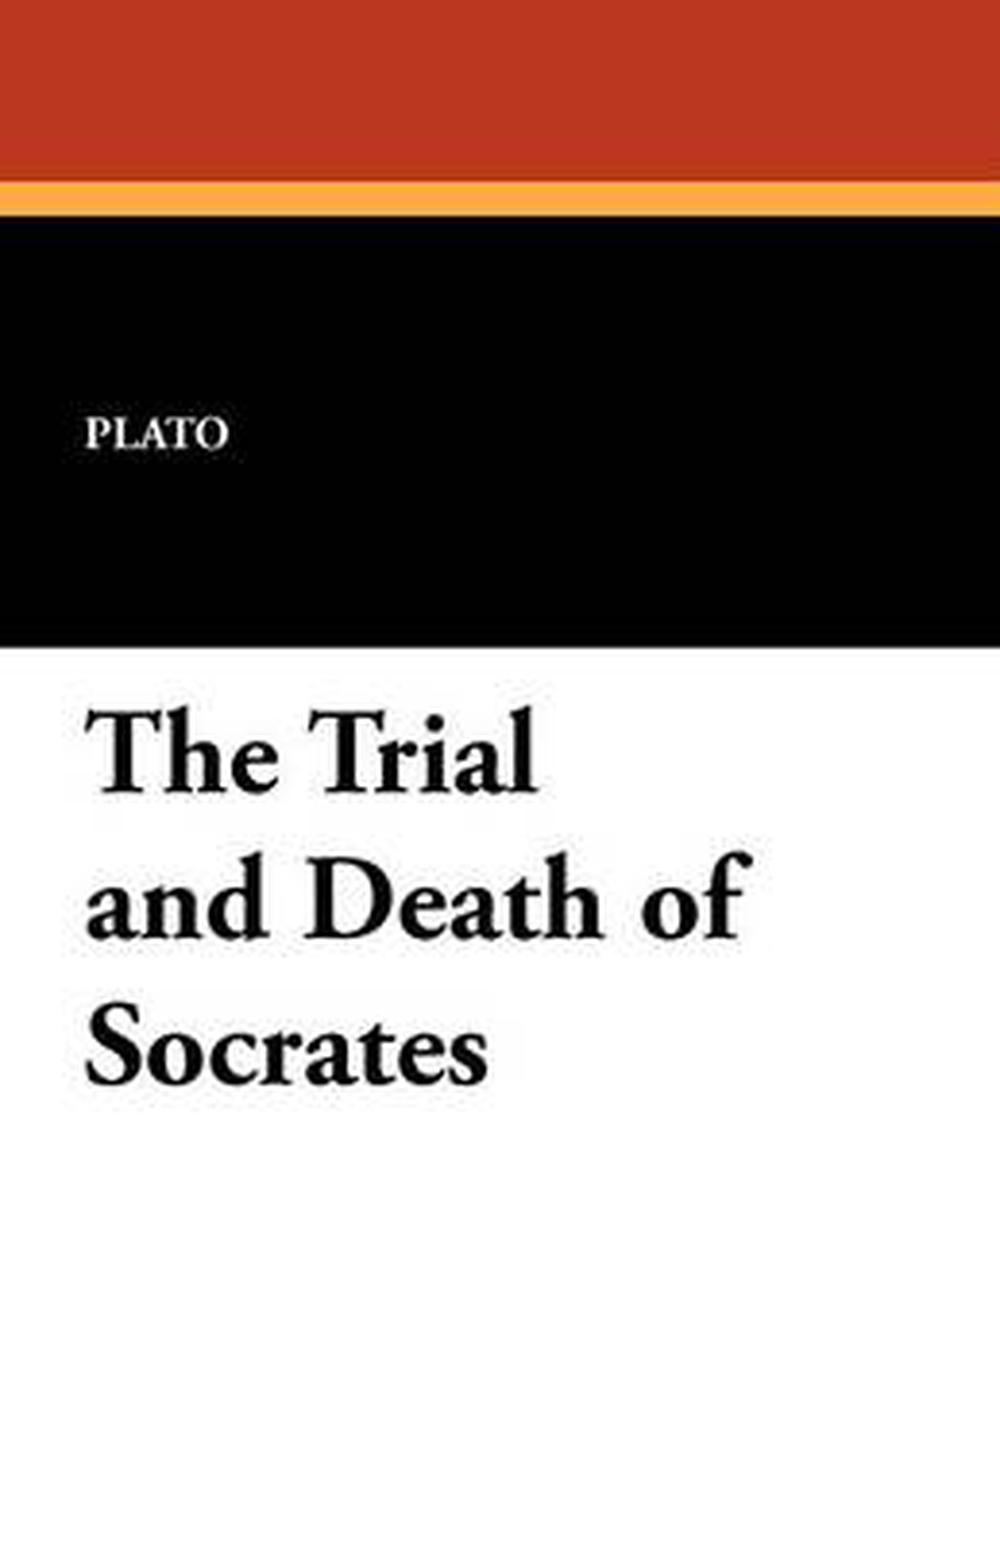 comparison of platos the last days of Download free ebook:the last days of socrates - free chm, pdf ebooks download the words and deeds of great men have different effects on different people most scholars base their accounts of socrates on platos dialogues, especially the four dialogues included in this volume: euthyphro.